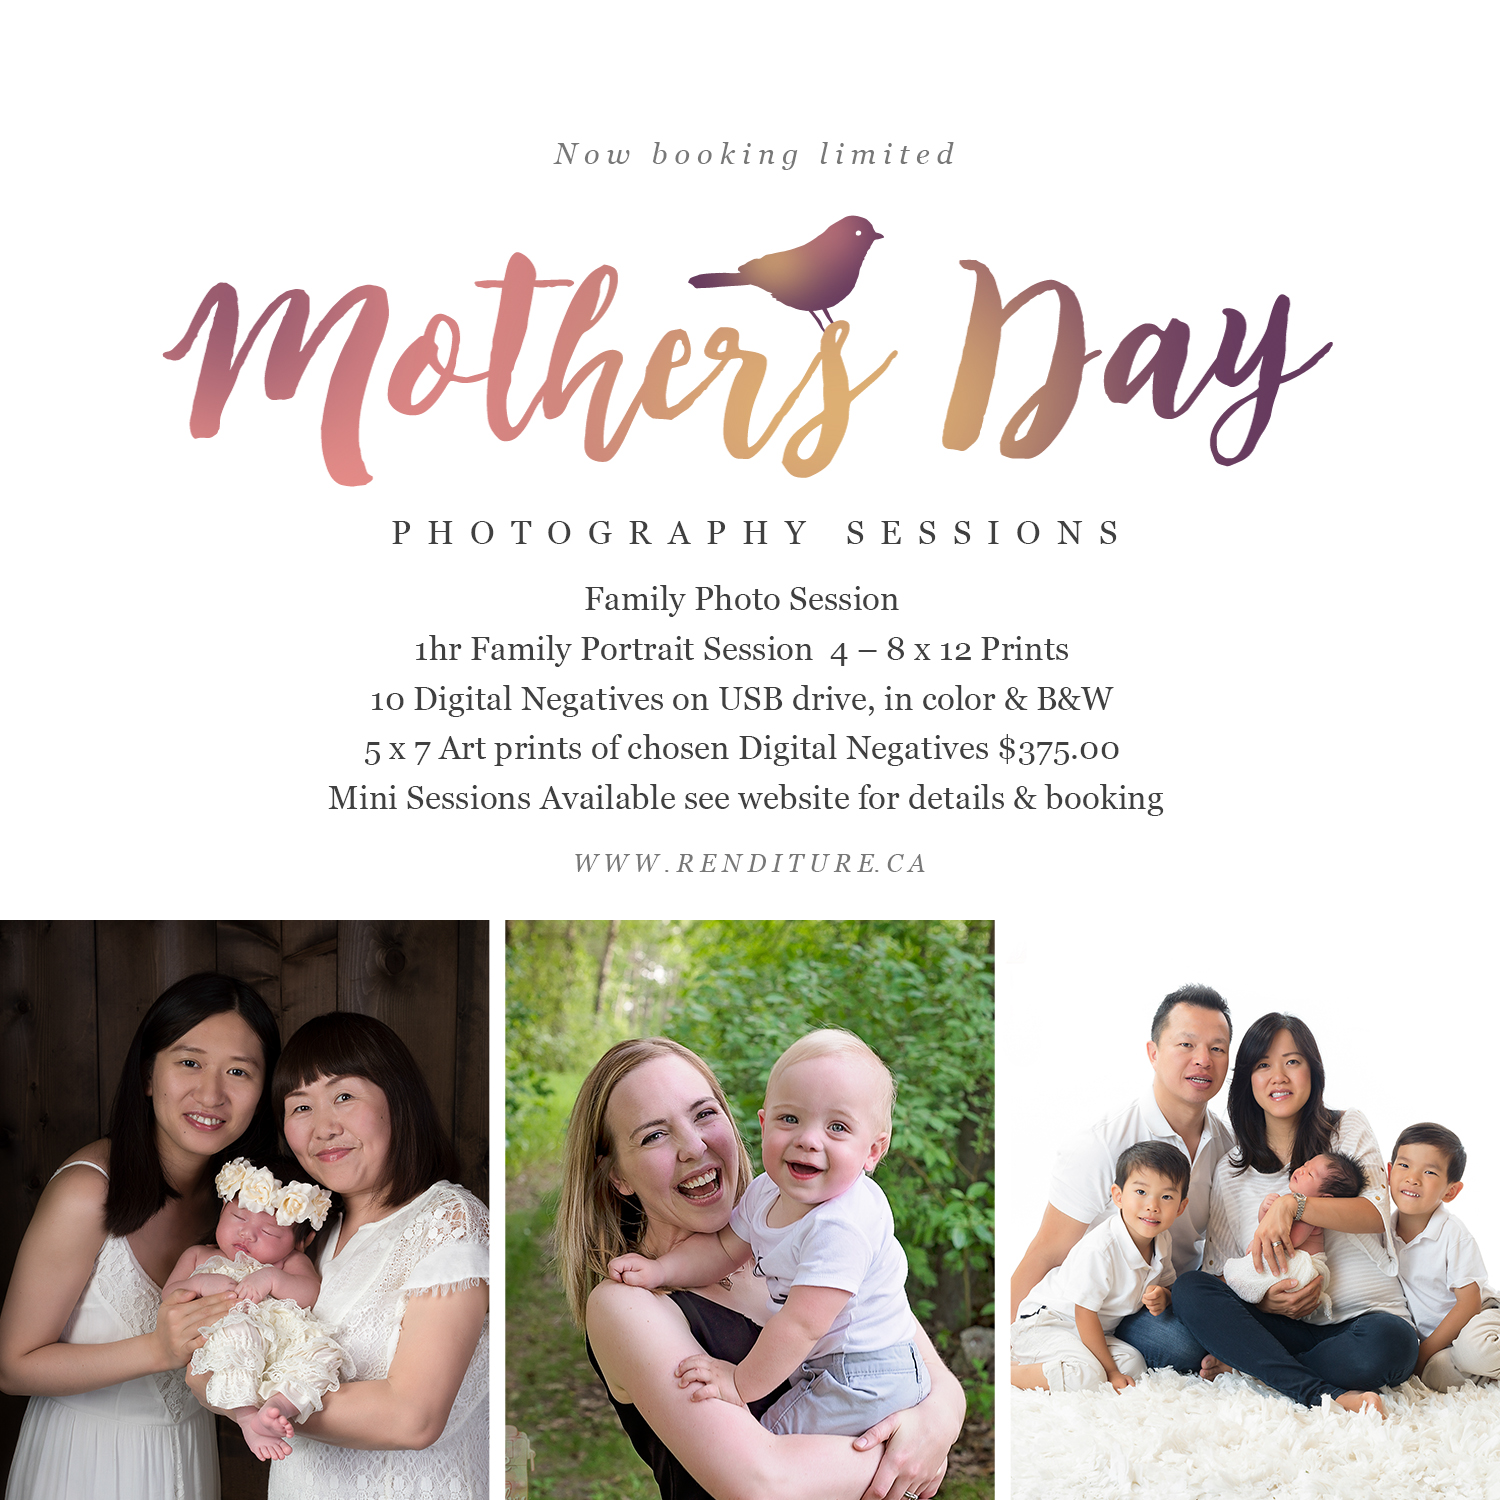 Mothers Day,Family Photo,Easter,Easter Mini,Newborn Photography,Saskatoon,Photographer,Maternity,Photography,Newborn,Photographers,Pregnancy,Family,Renditure,Child,Photos,Saskatchewan,YXE,SK,IVF